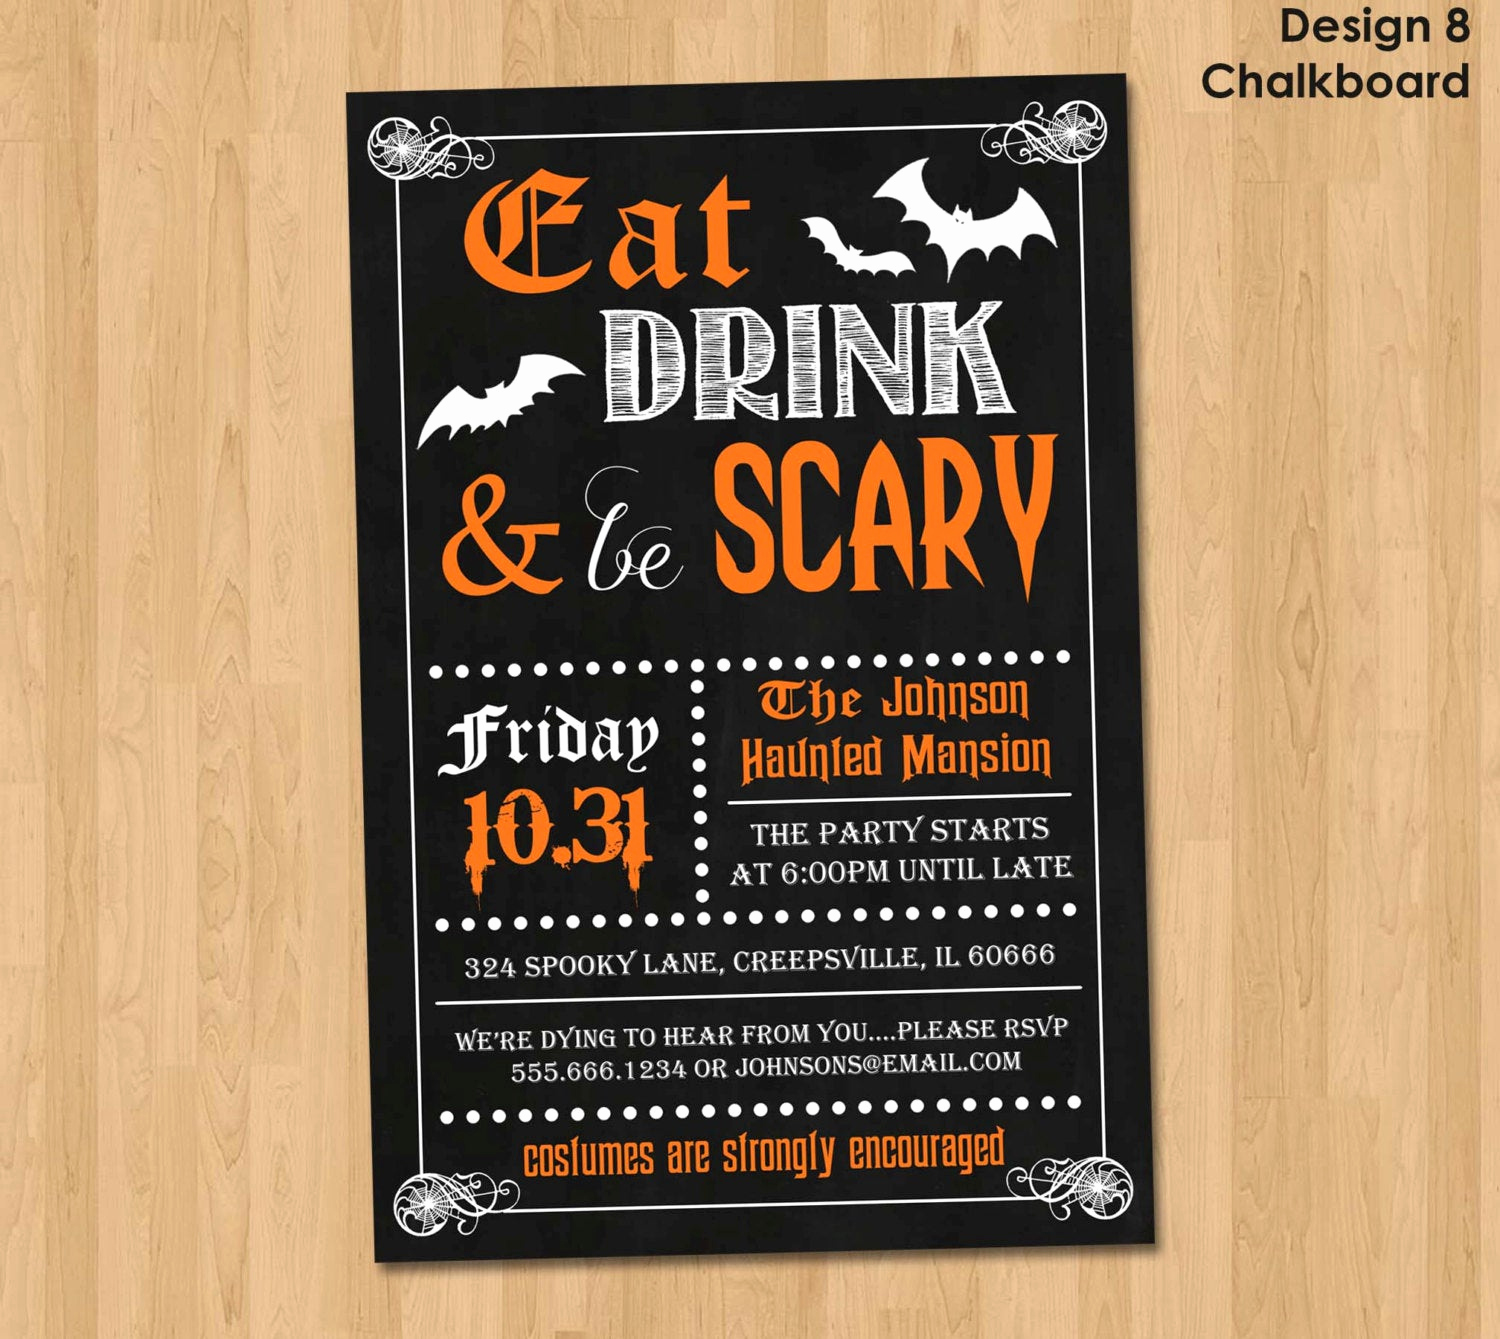 Halloween Invitation Wording Adults Beautiful Halloween Invitation Adult Halloween Invitation Halloween